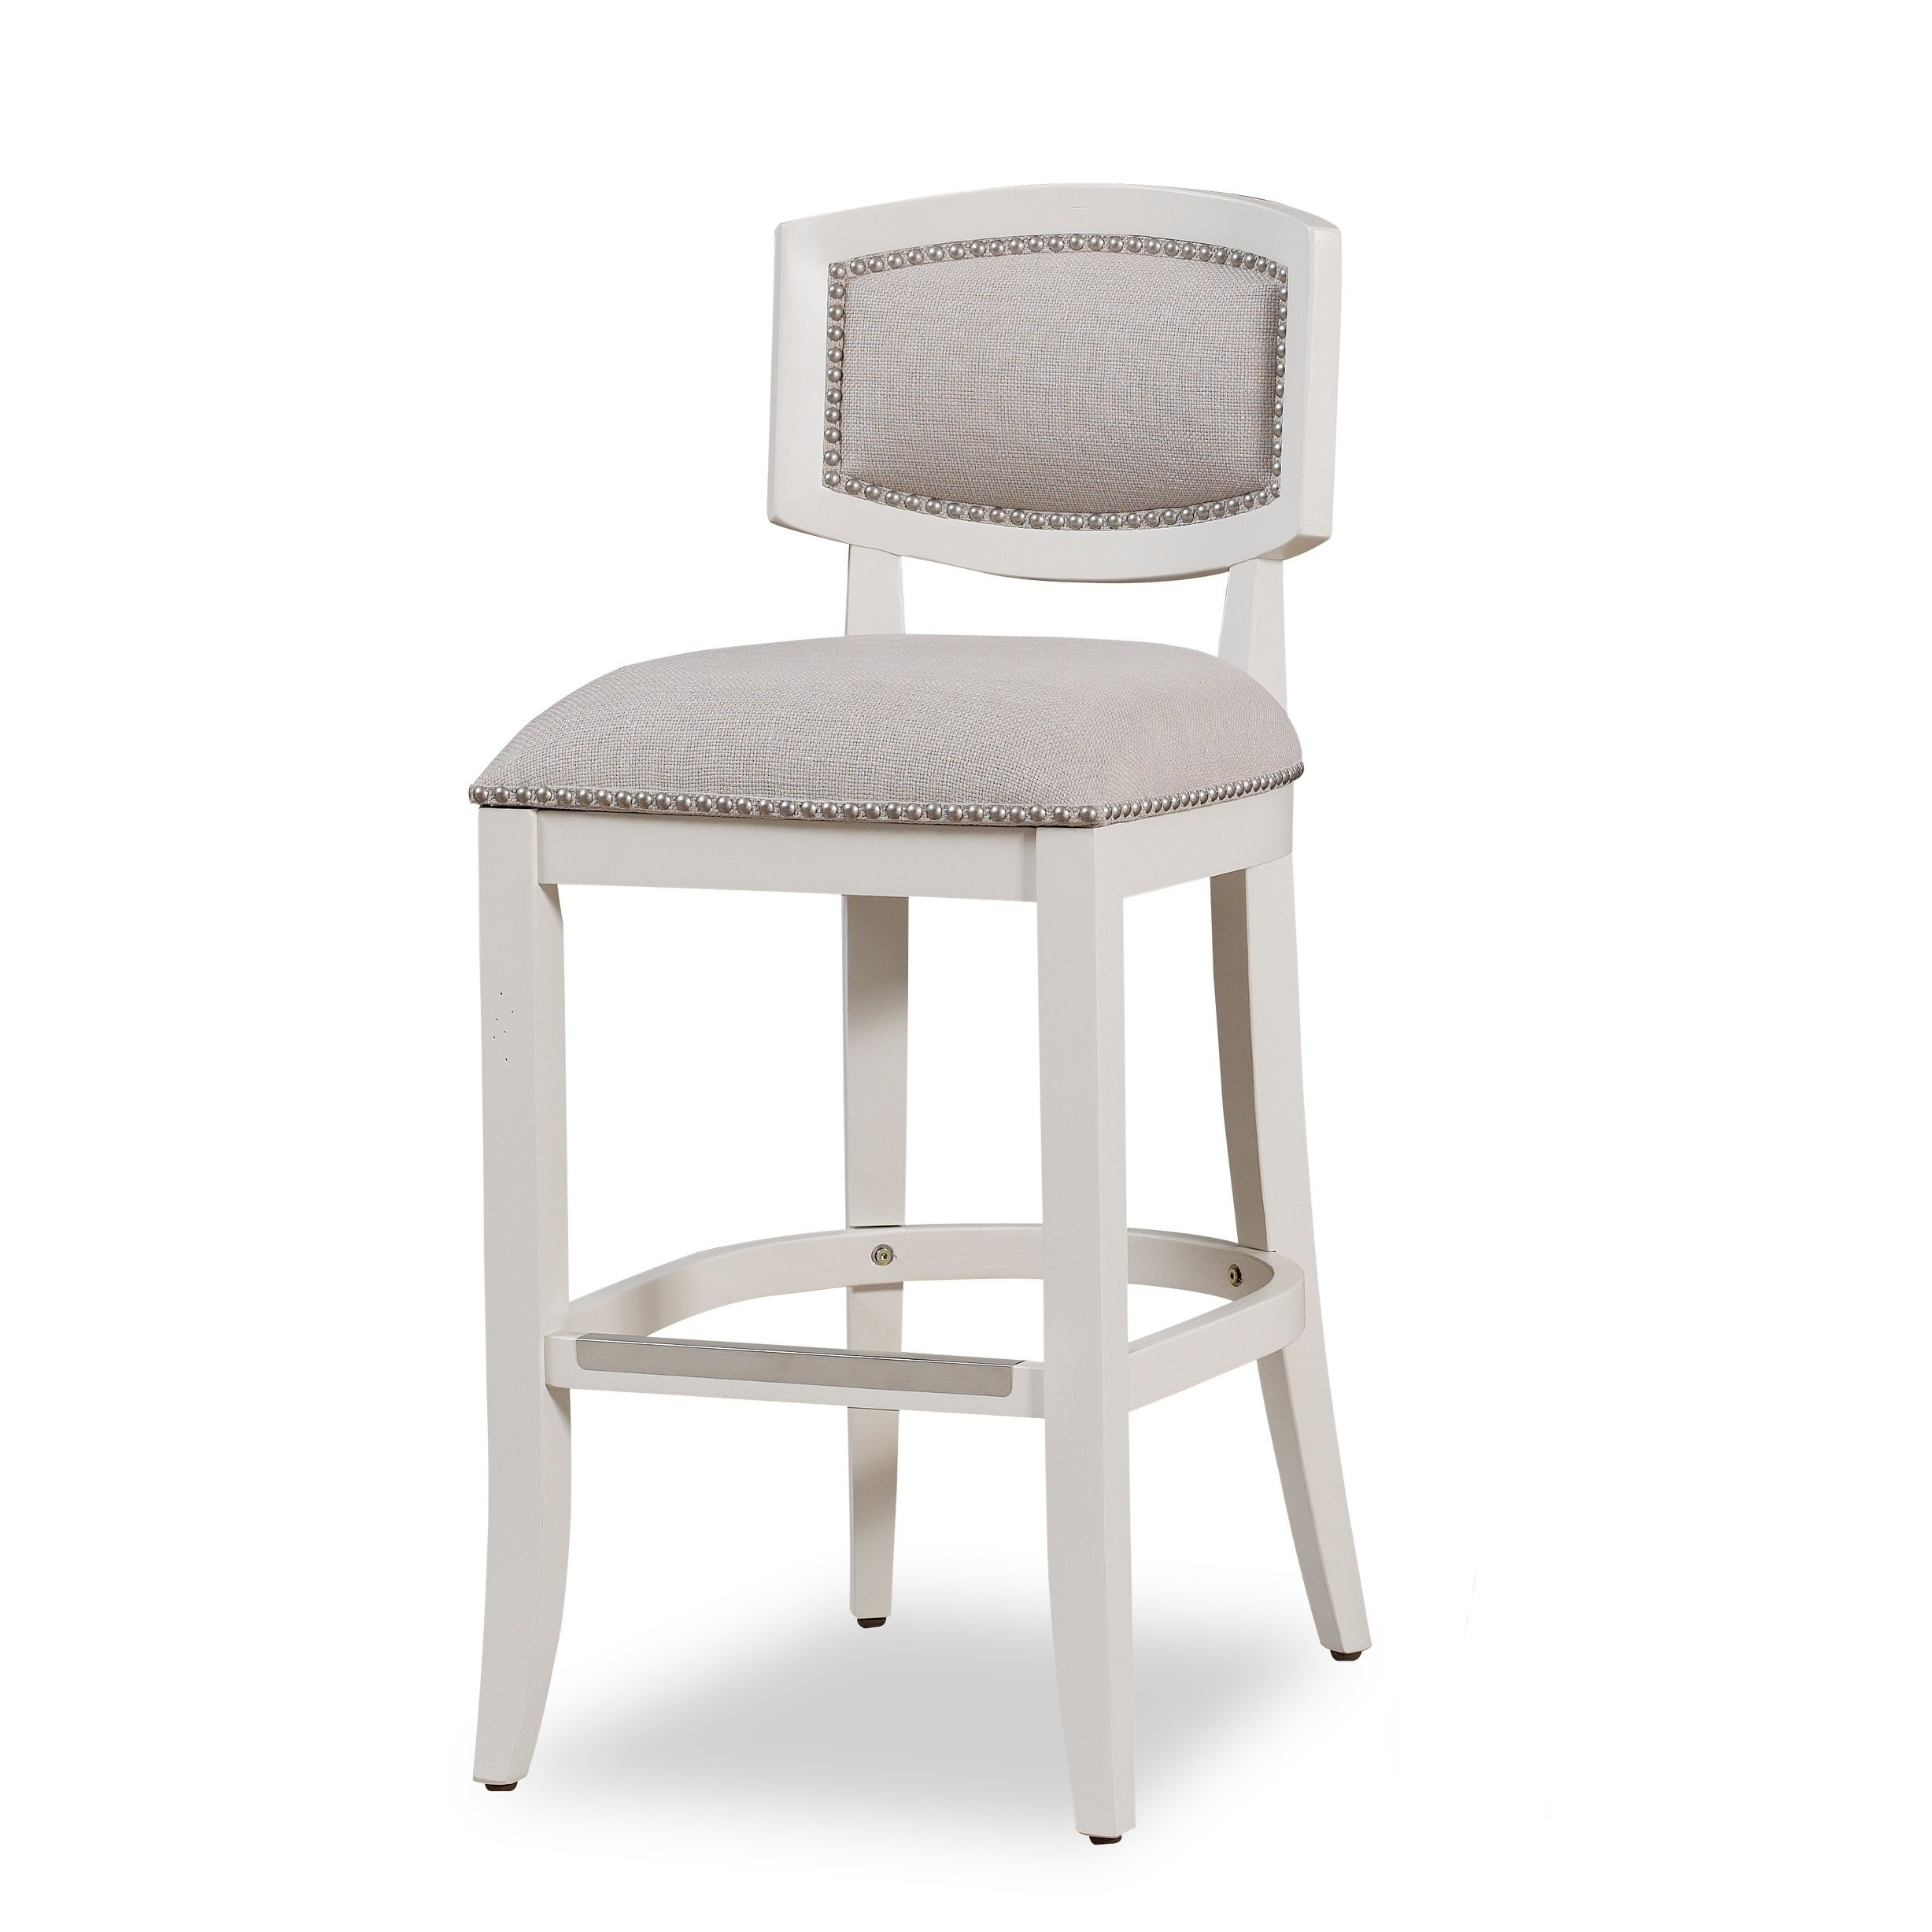 Aspen Antique White Counter Height Stool By Greyson Living